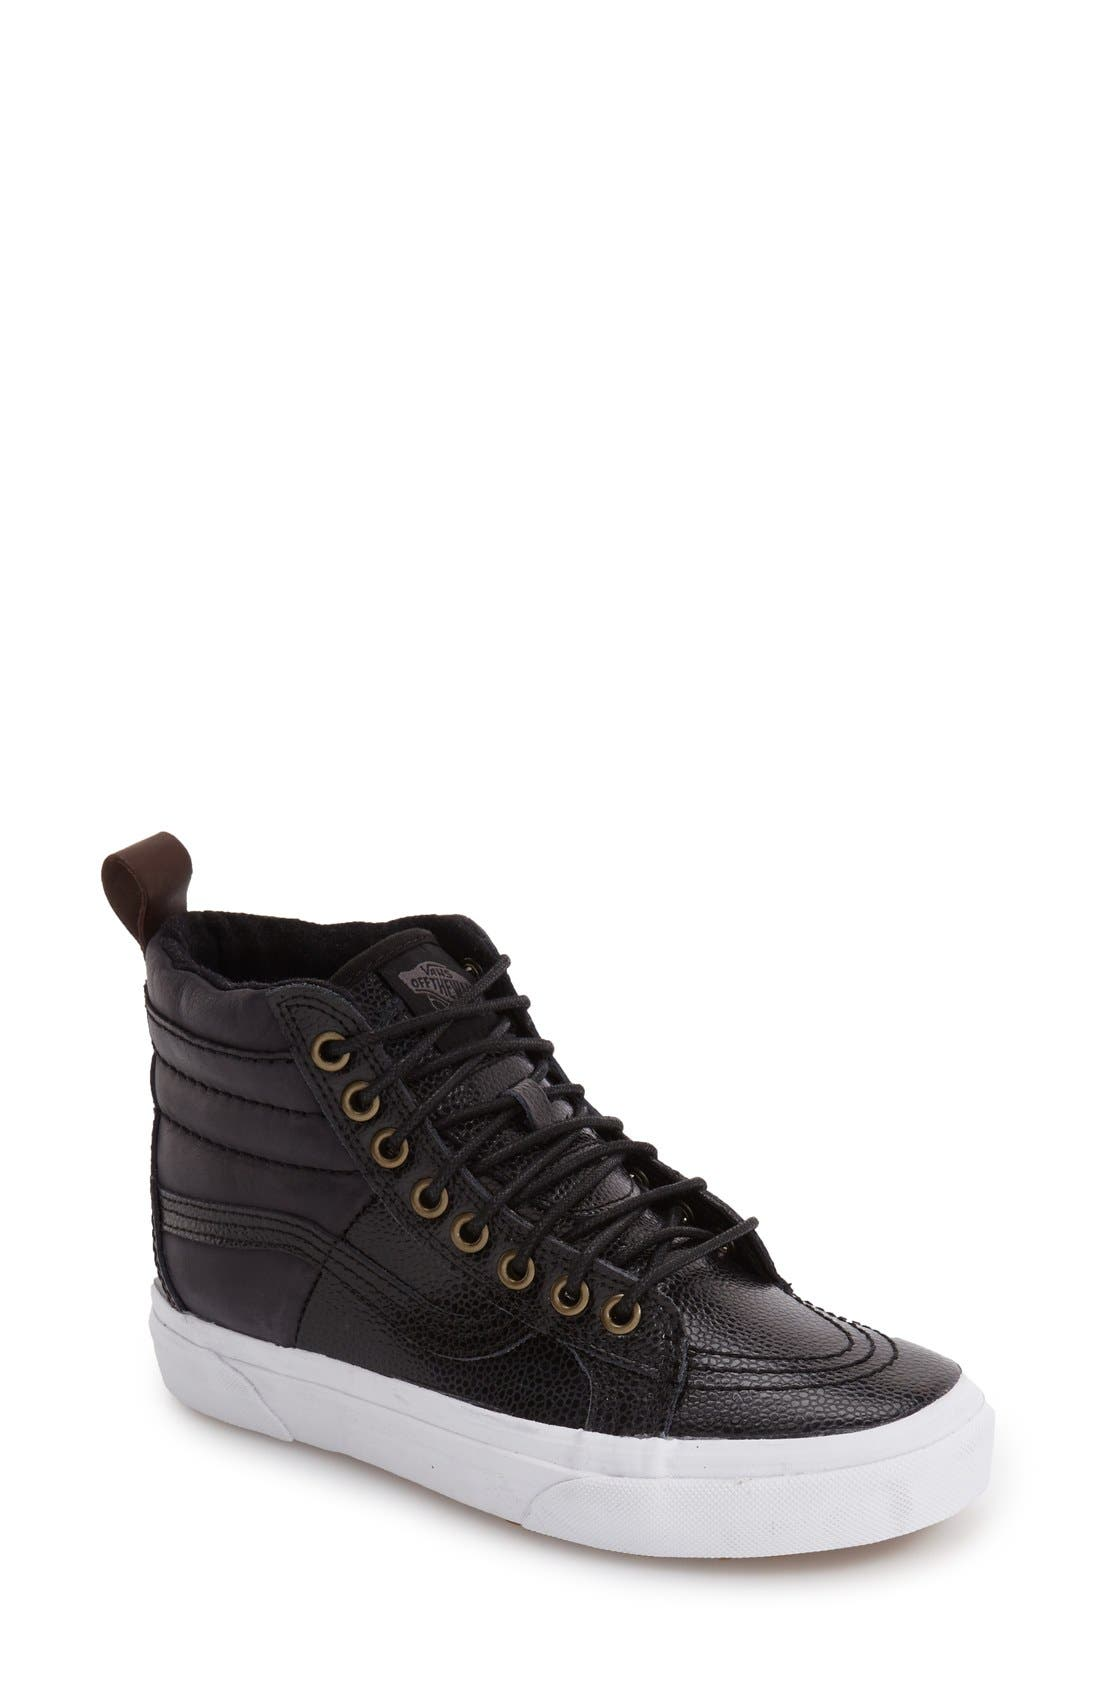 Main Image - Vans 'Hana Beaman - Sk8-Hi 46 MTE' Water Resistant High Top Sneaker (Women)